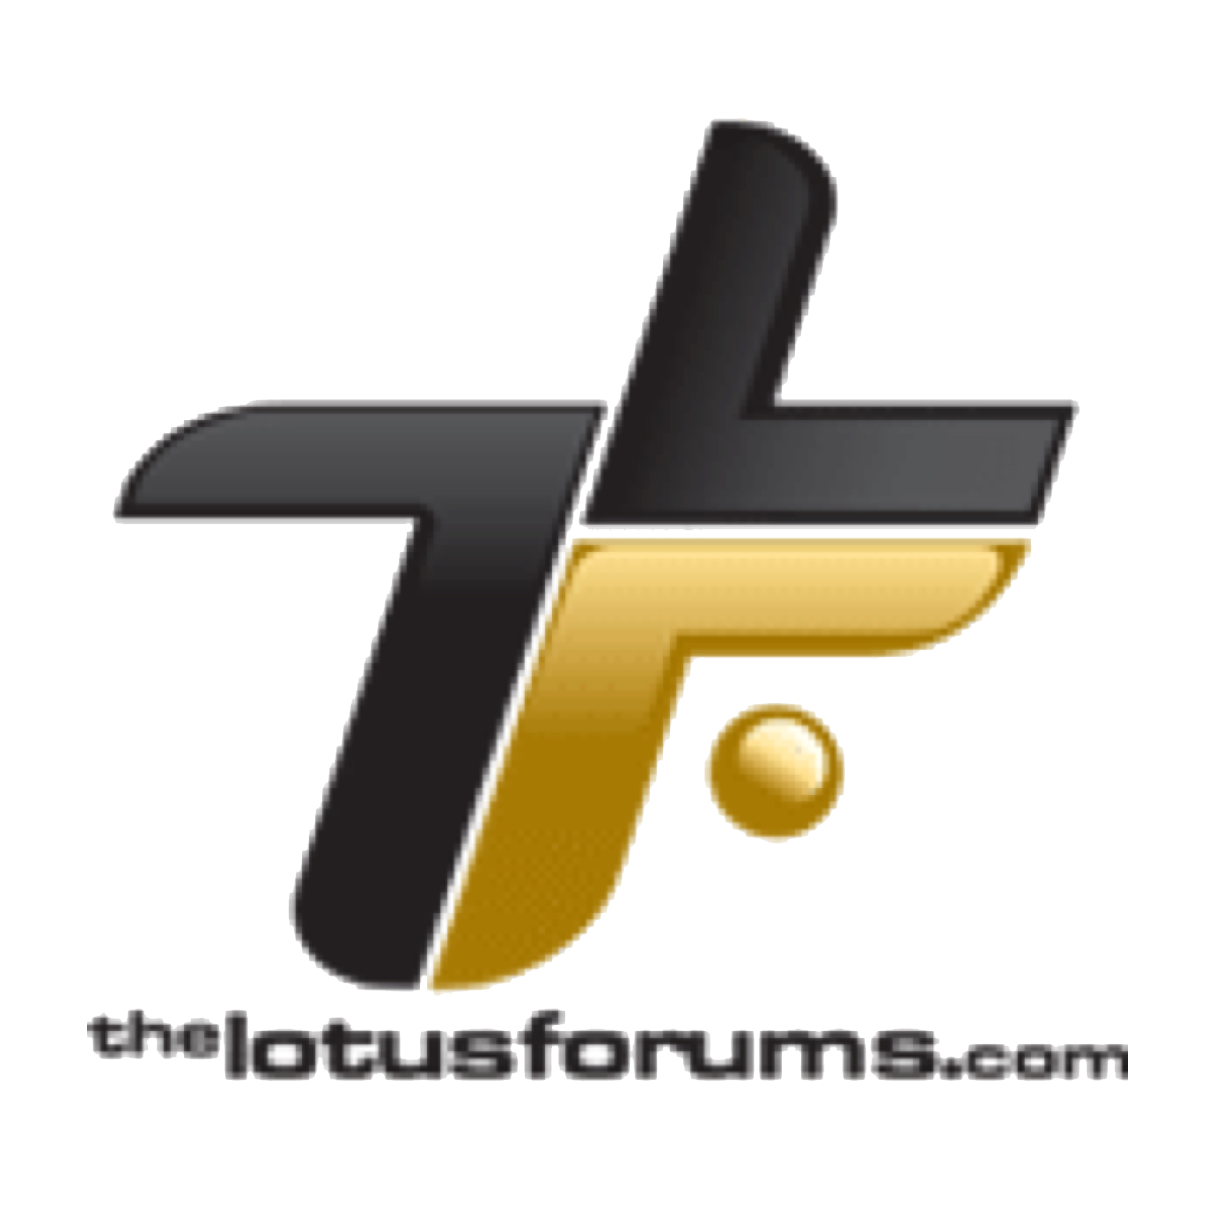 """Lotus Forums - """"The world's busiest Lotus Cars website"""".Official community partner for Lotus Cars and the place to go for everything Lotus. Discussions with fellow Lotus owners, latest news from Lotus, reviews, motorsports …. if it's about Lotus, it's here!"""